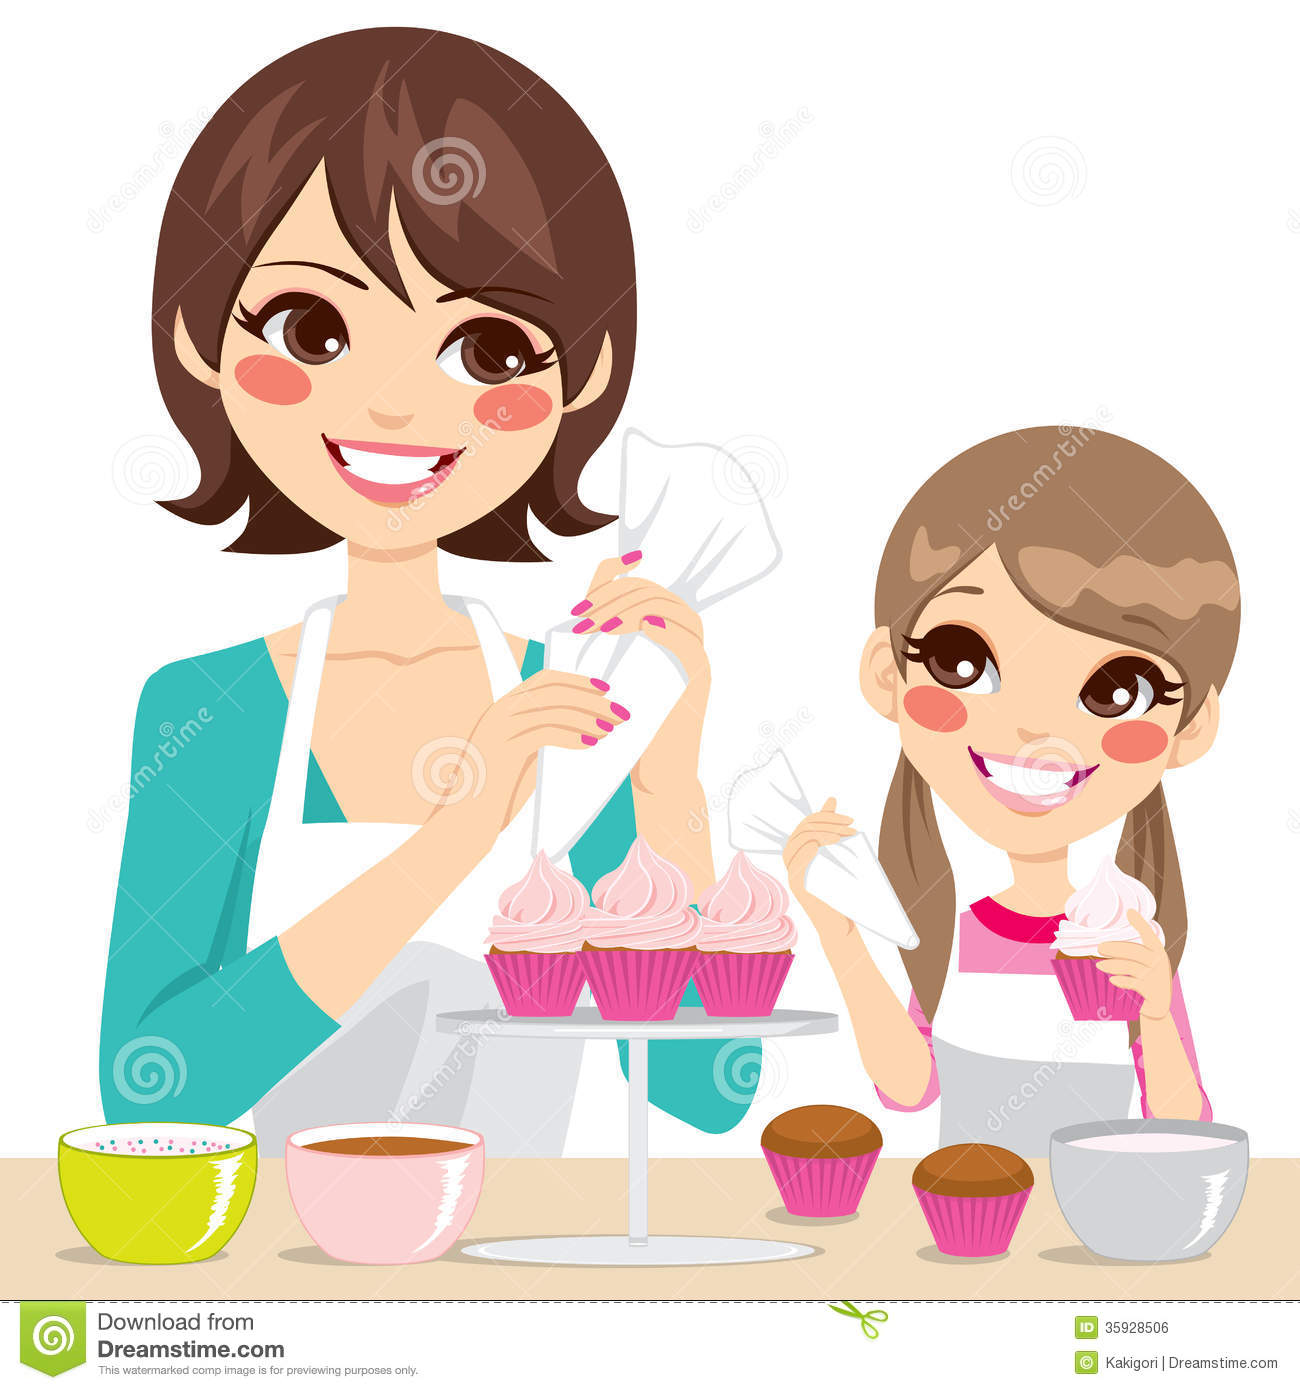 Woman Decorating Cupcakes woman decorating homemade cupcakes with cream royalty free stock